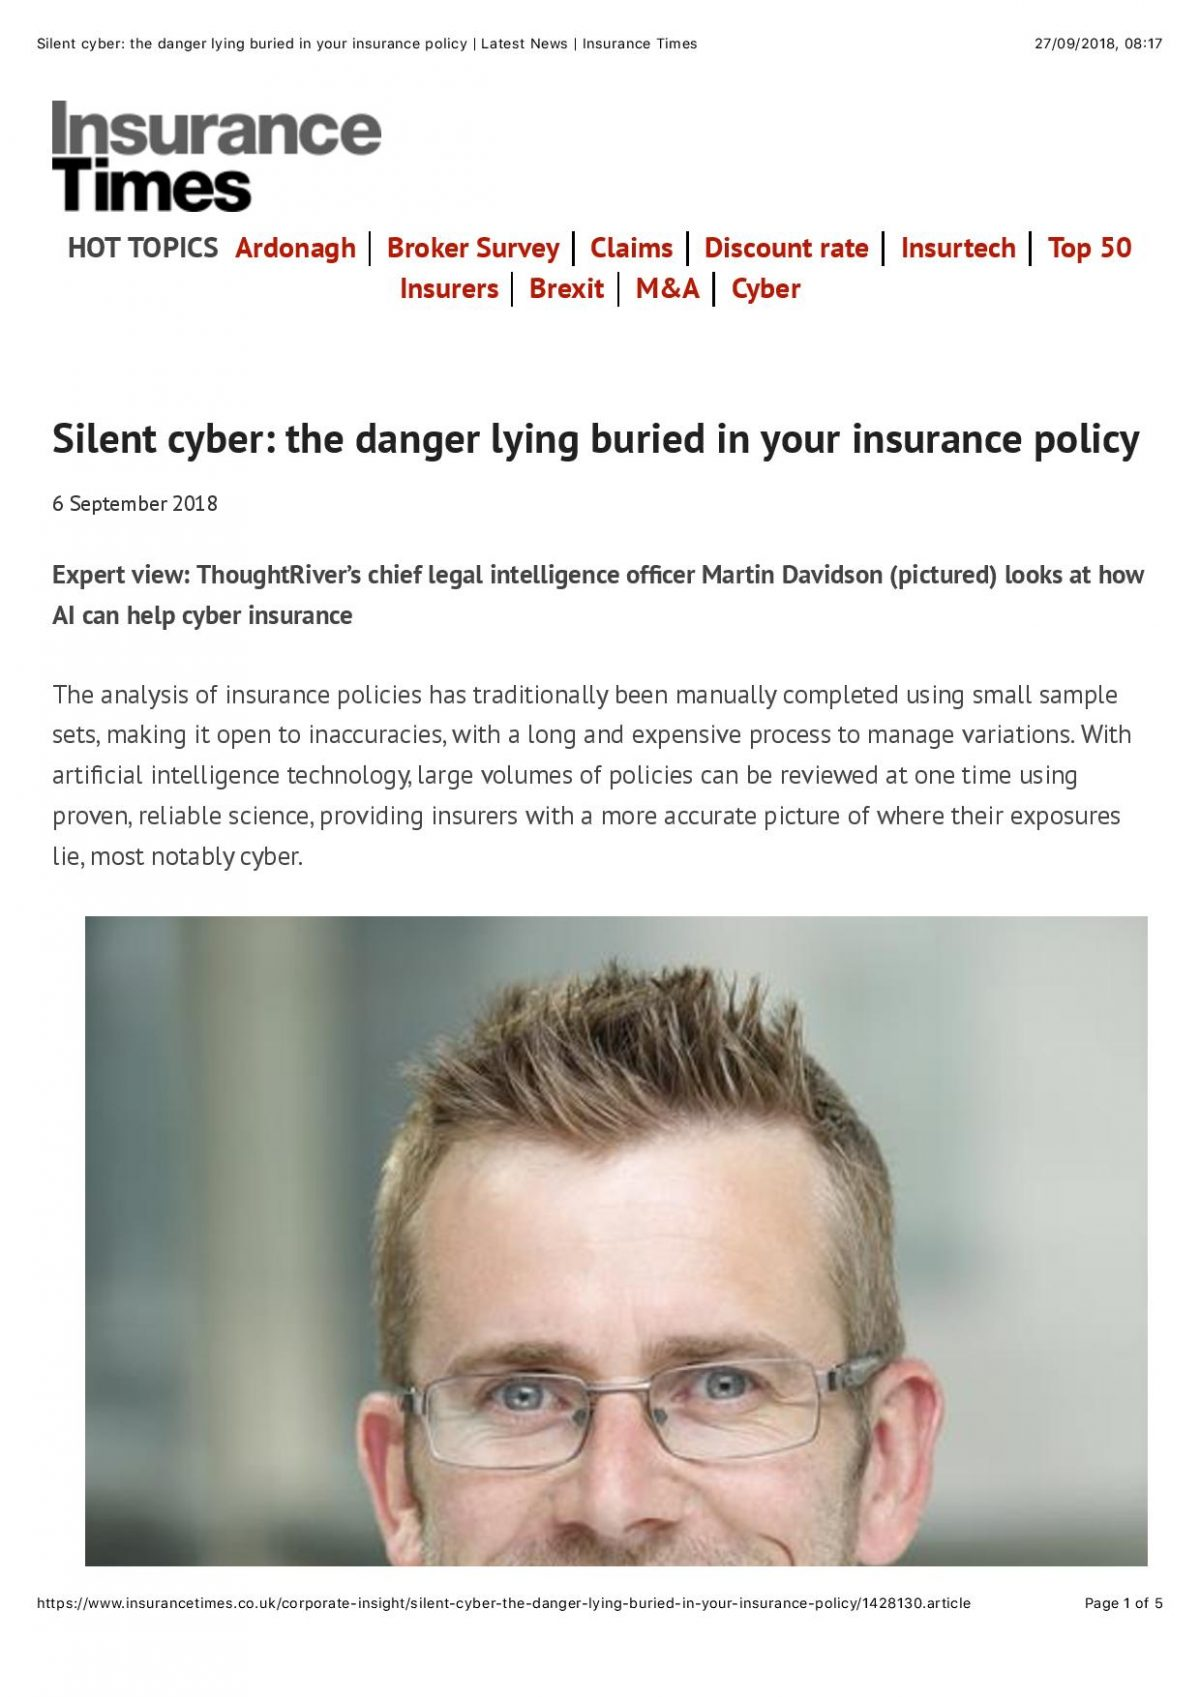 silent-cyber-the-danger-lying-buried-in-your-insurance-policy-page-001